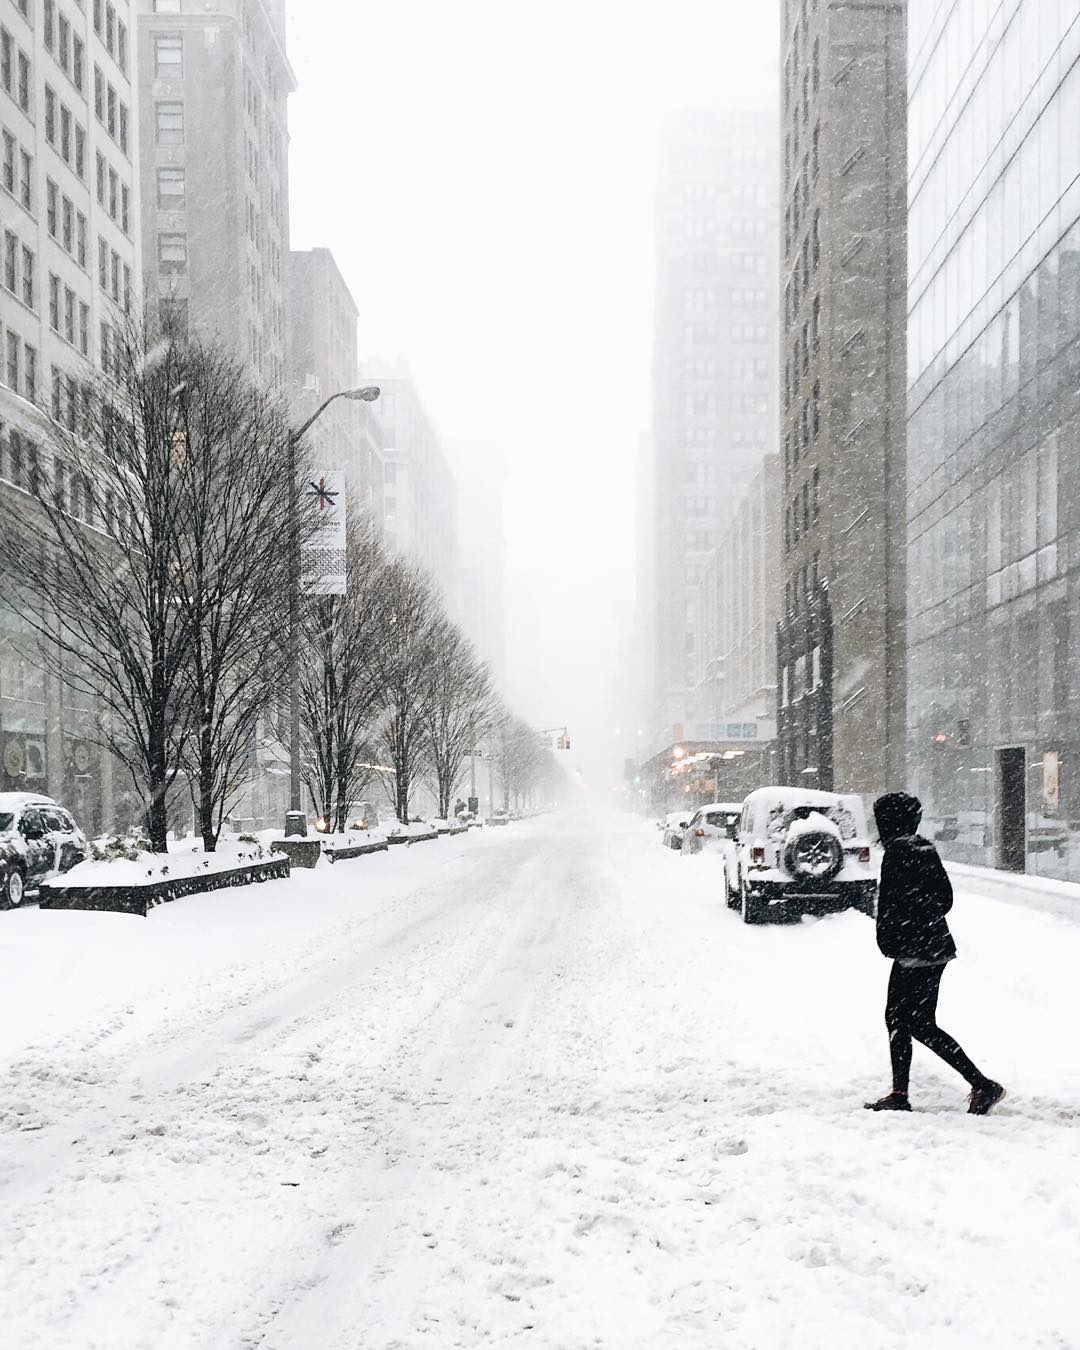 #Snowmaggedon in #NYC has got us bundled up and staying in, but not @stylebytone. #Brrr #jonas